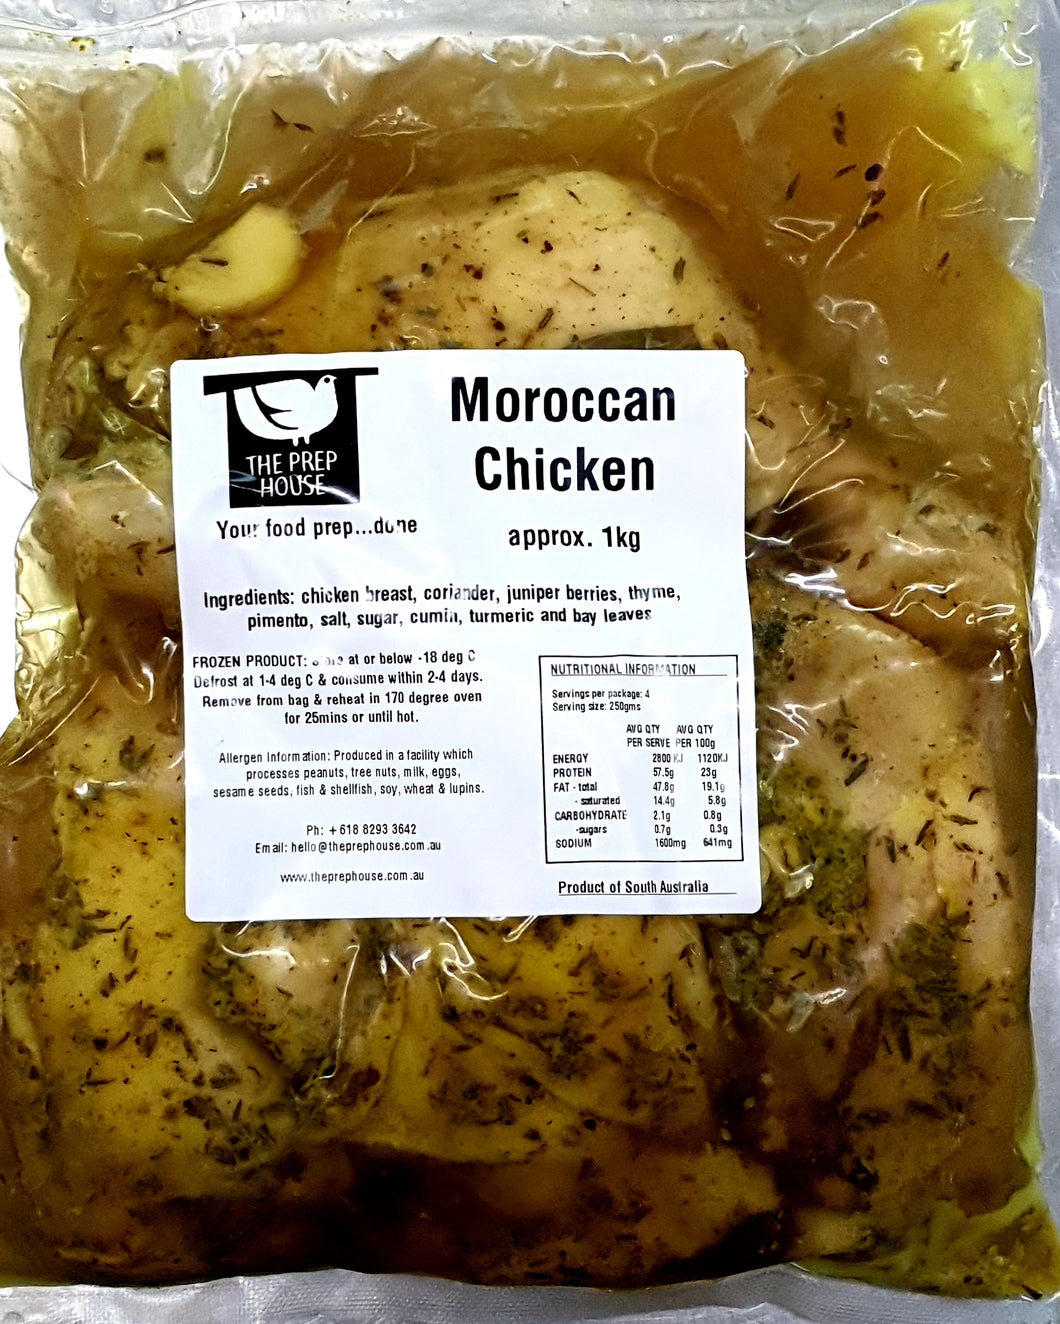 Moroccan Chicken (4 pieces)